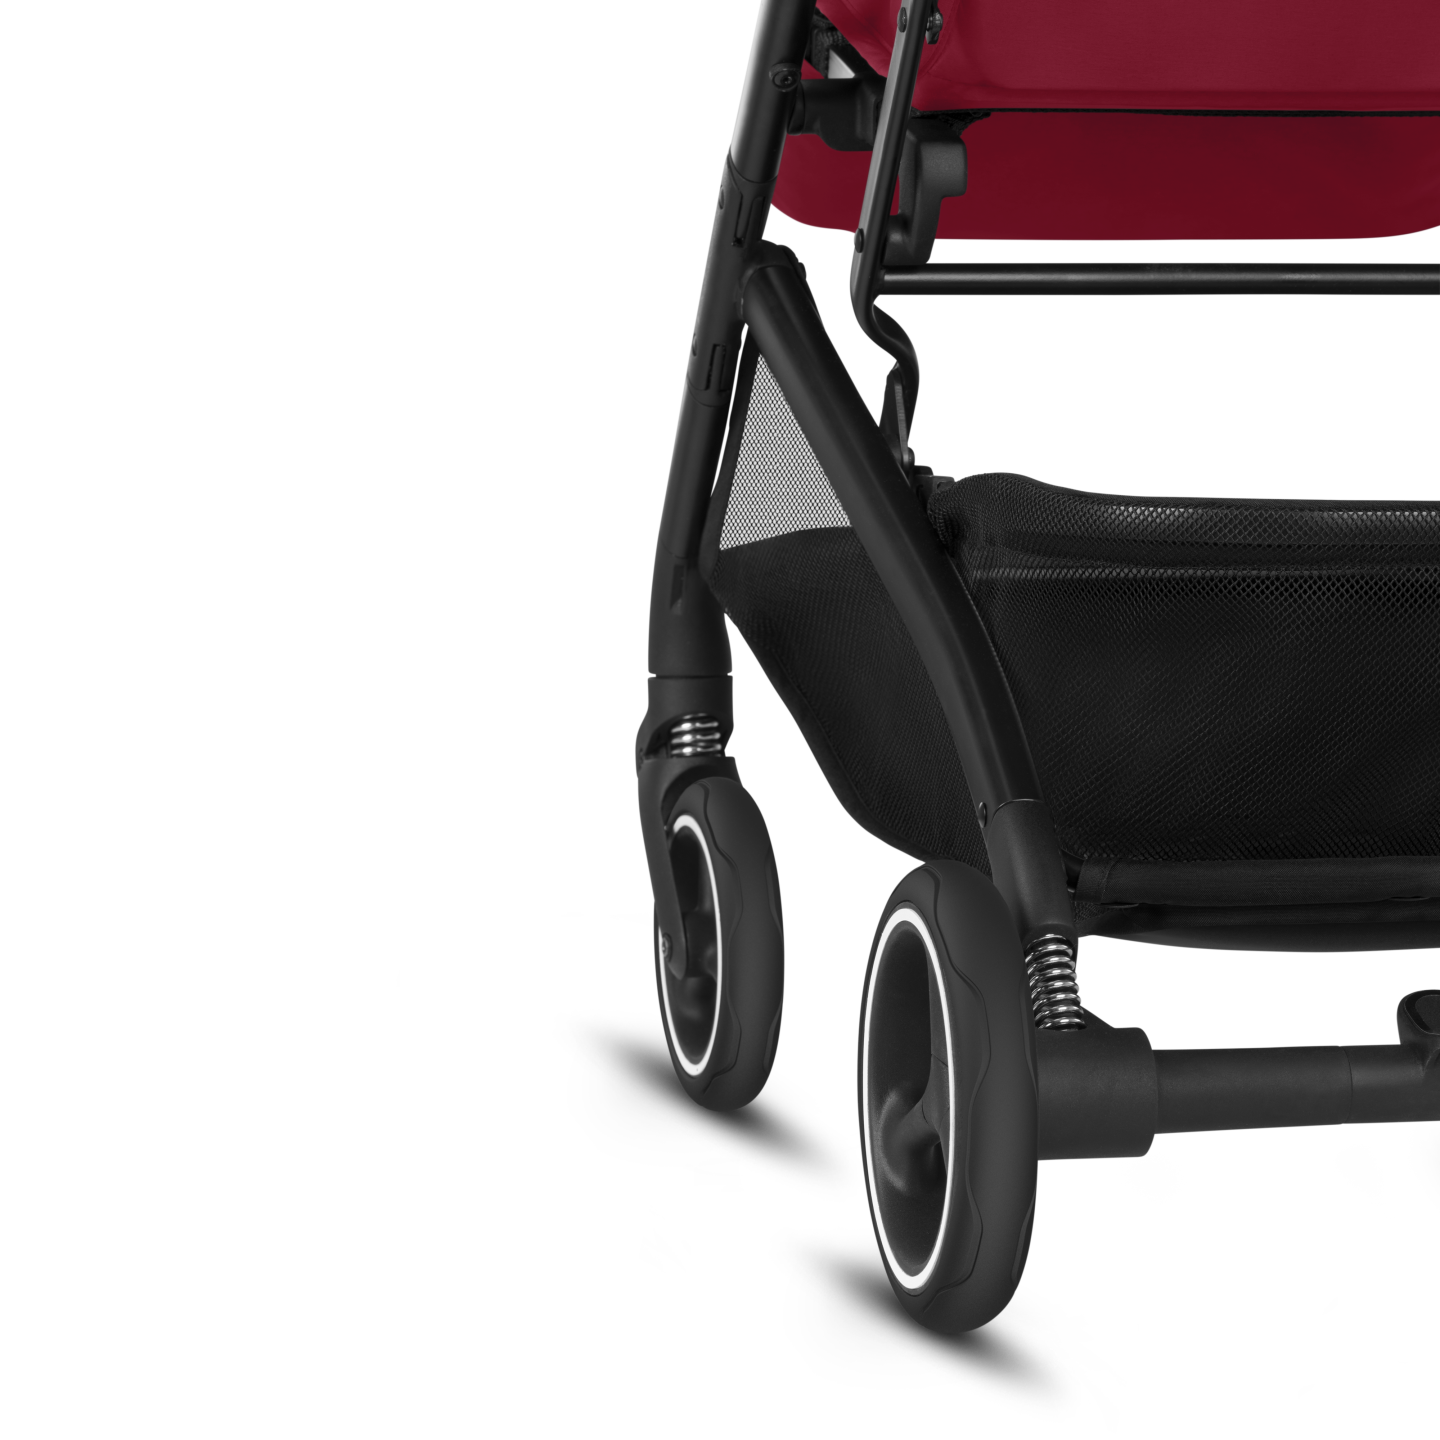 https://images.gb-online.com/q_85,dn_72,h_1440/gbo/product-Qbit_-All-City-Rose-Red-Front-swivel-wheels-8727-8720-8589_doavfd